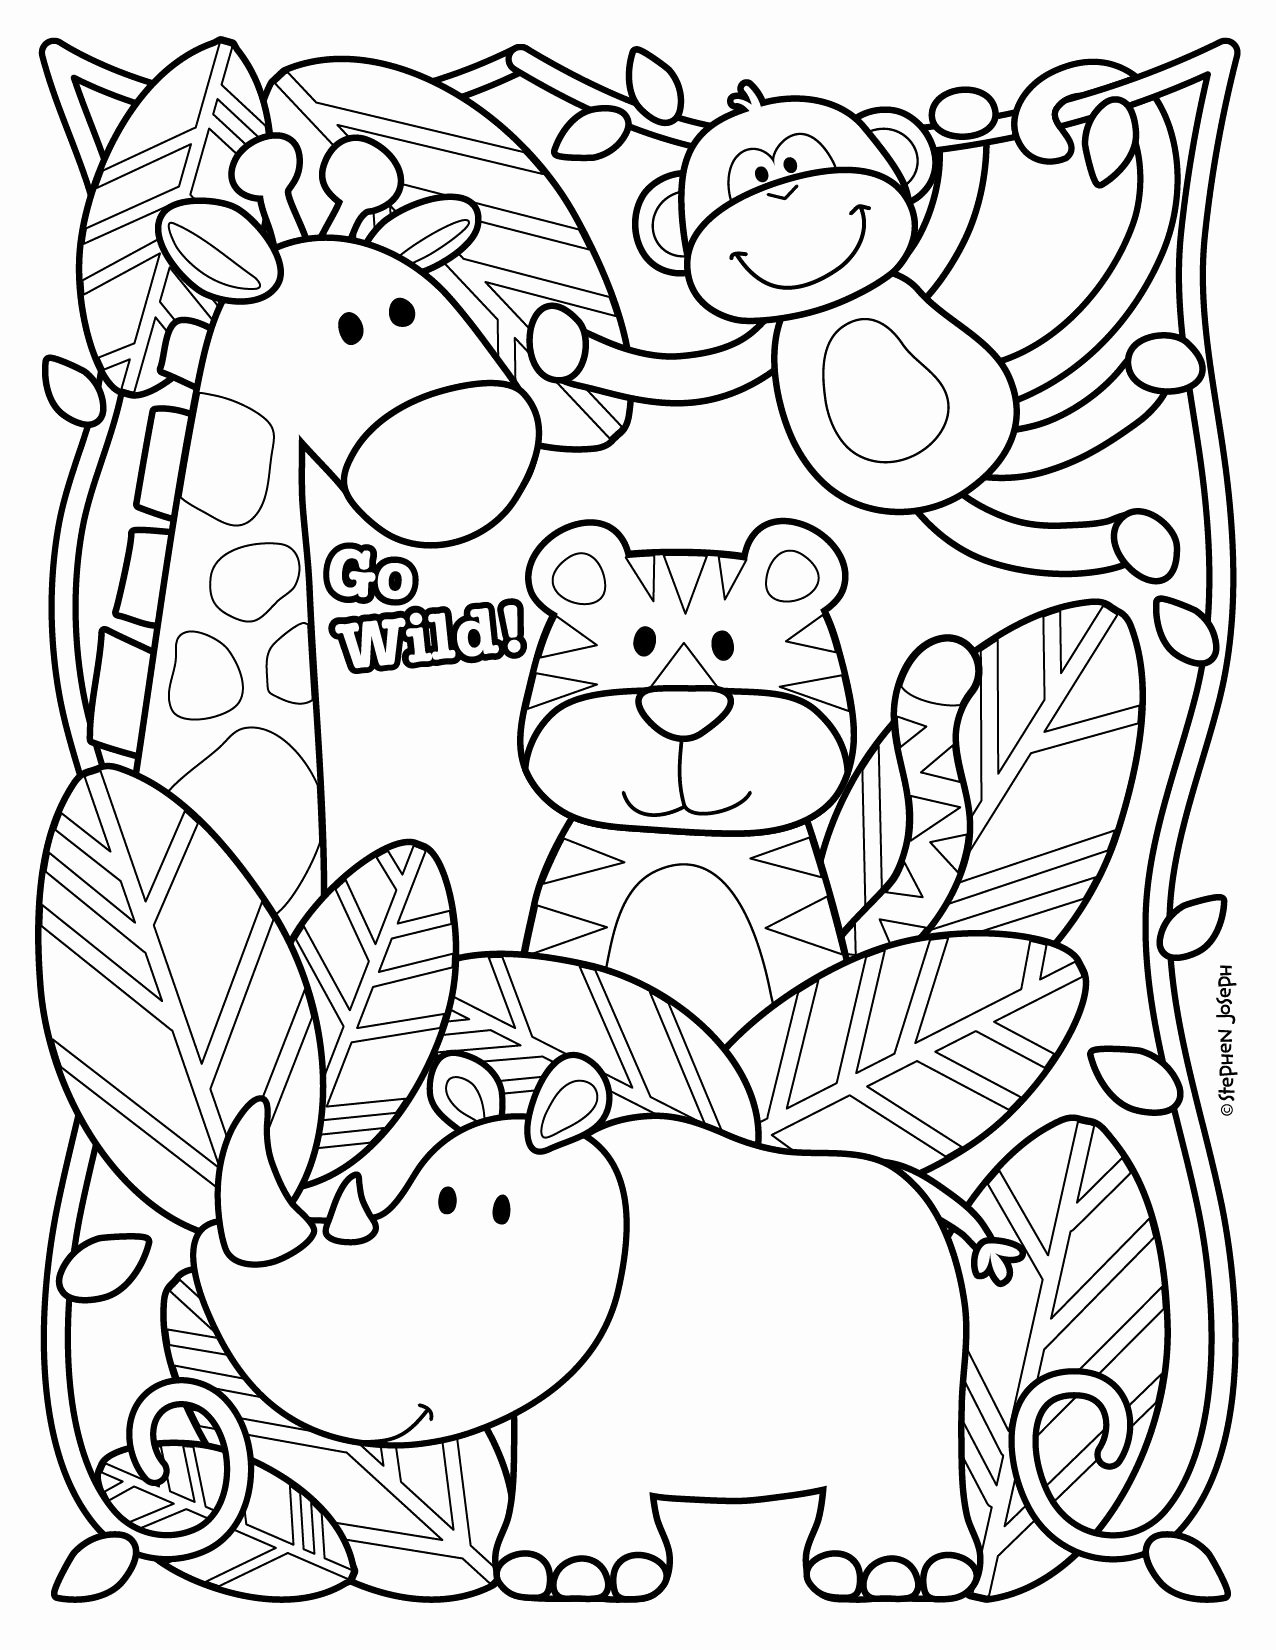 Zoo Worksheets for Preschoolers Lovely Coloring Best Printable Zoo Animal with forolers Baby